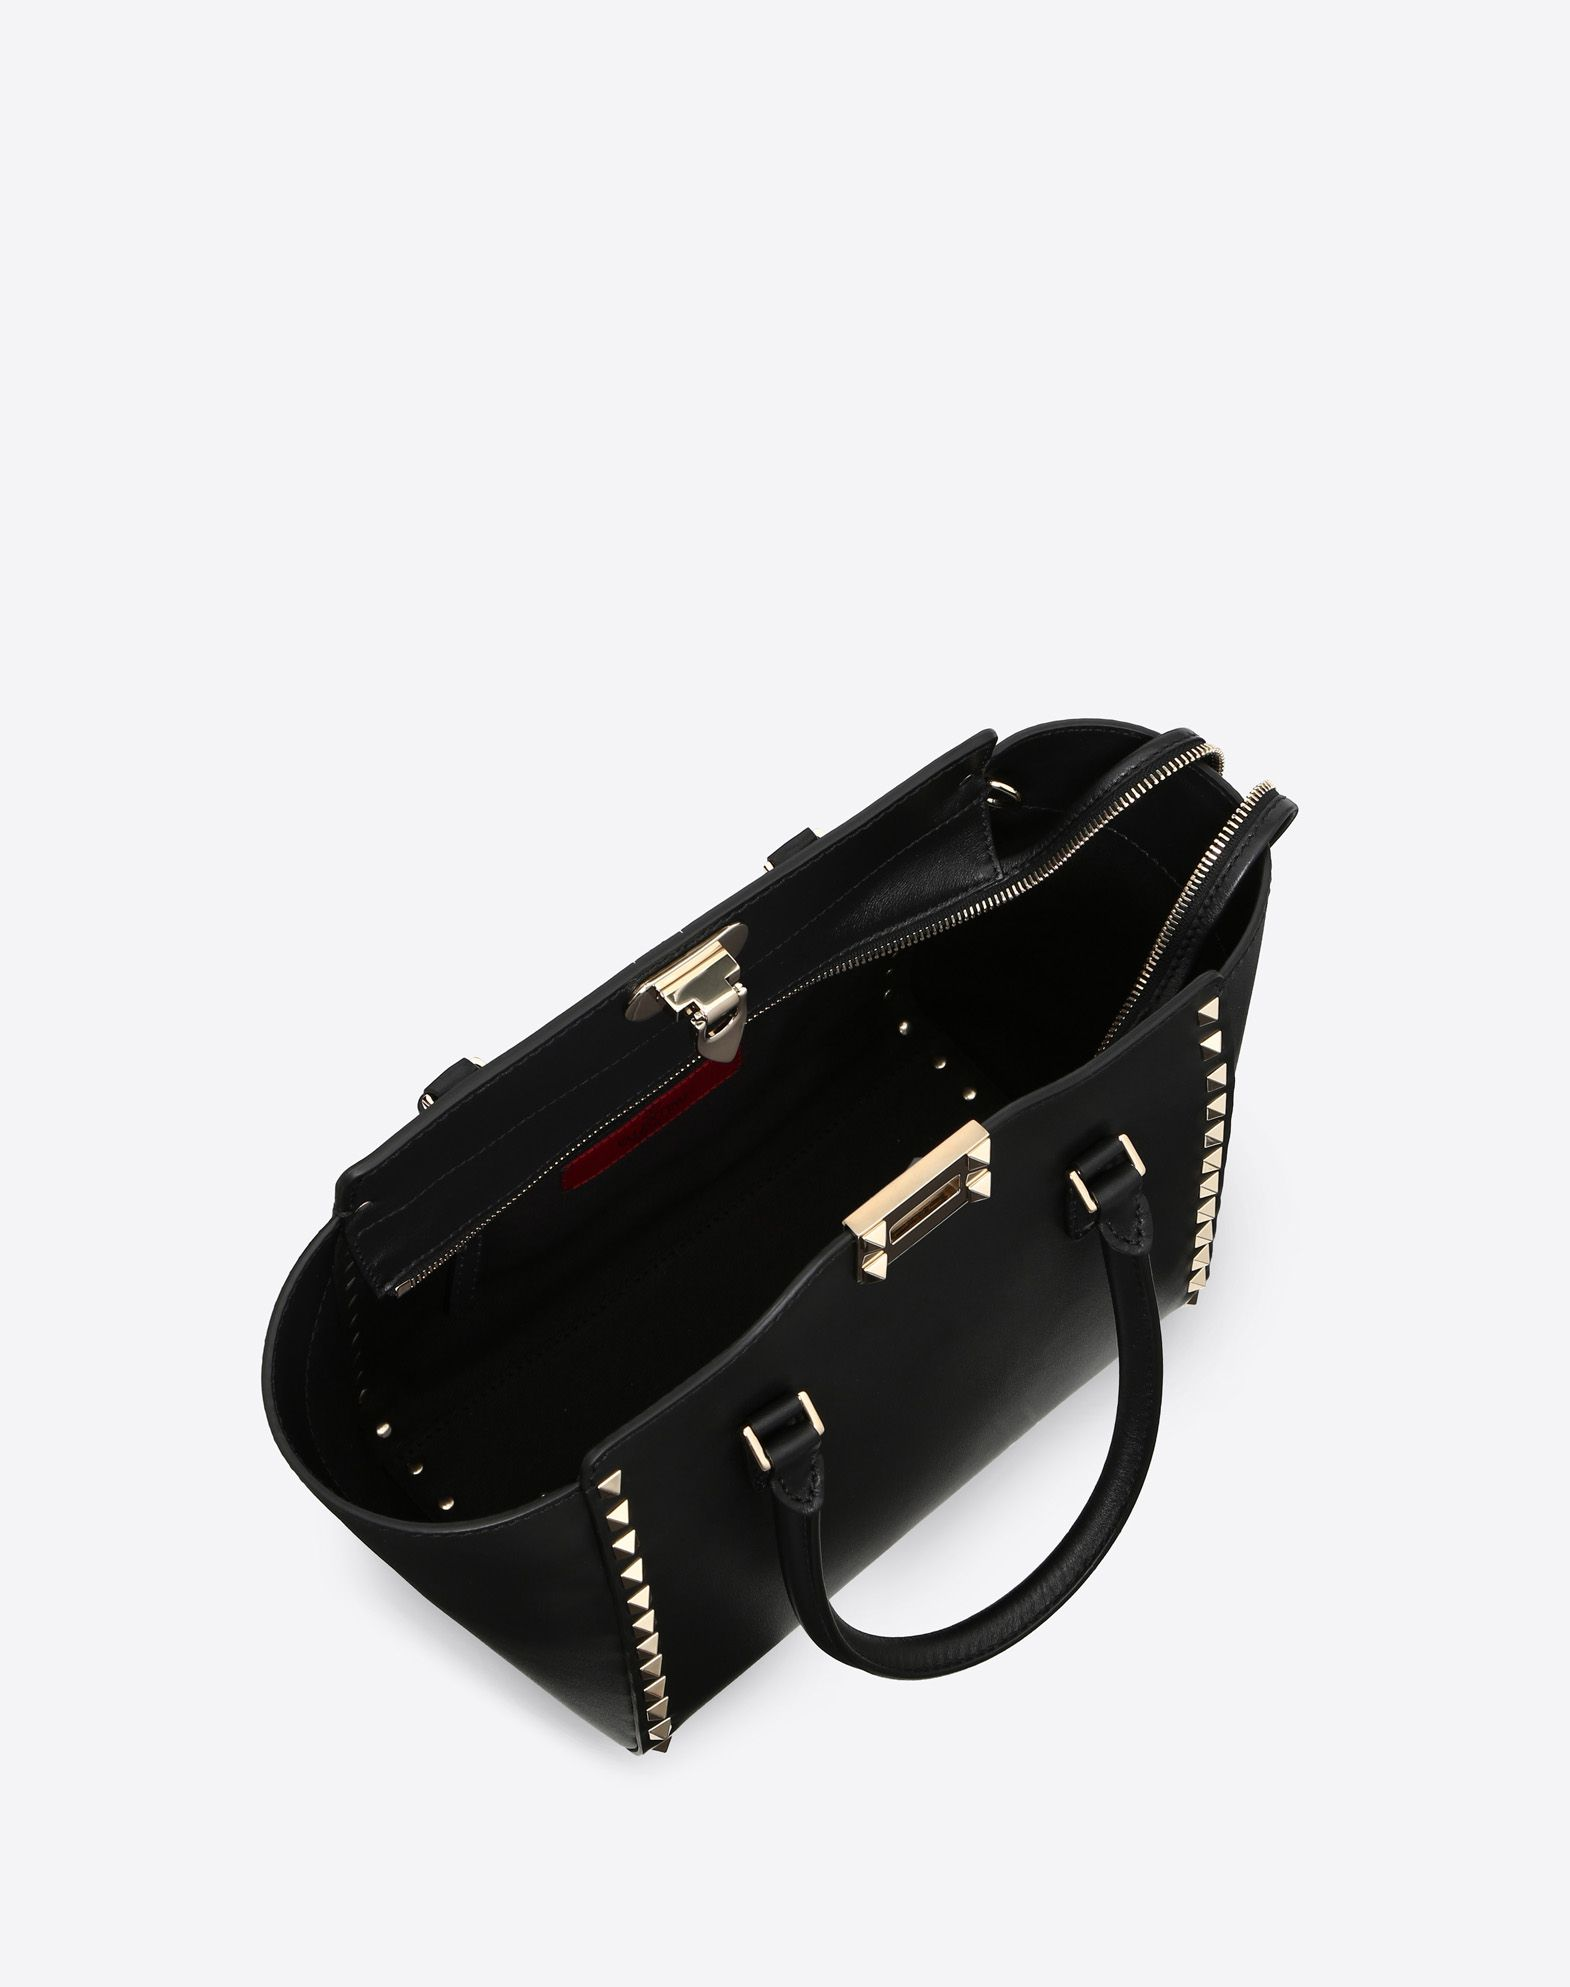 VALENTINO Studs Logo Solid color Internal pockets Removable shoulder strap  45341383lj